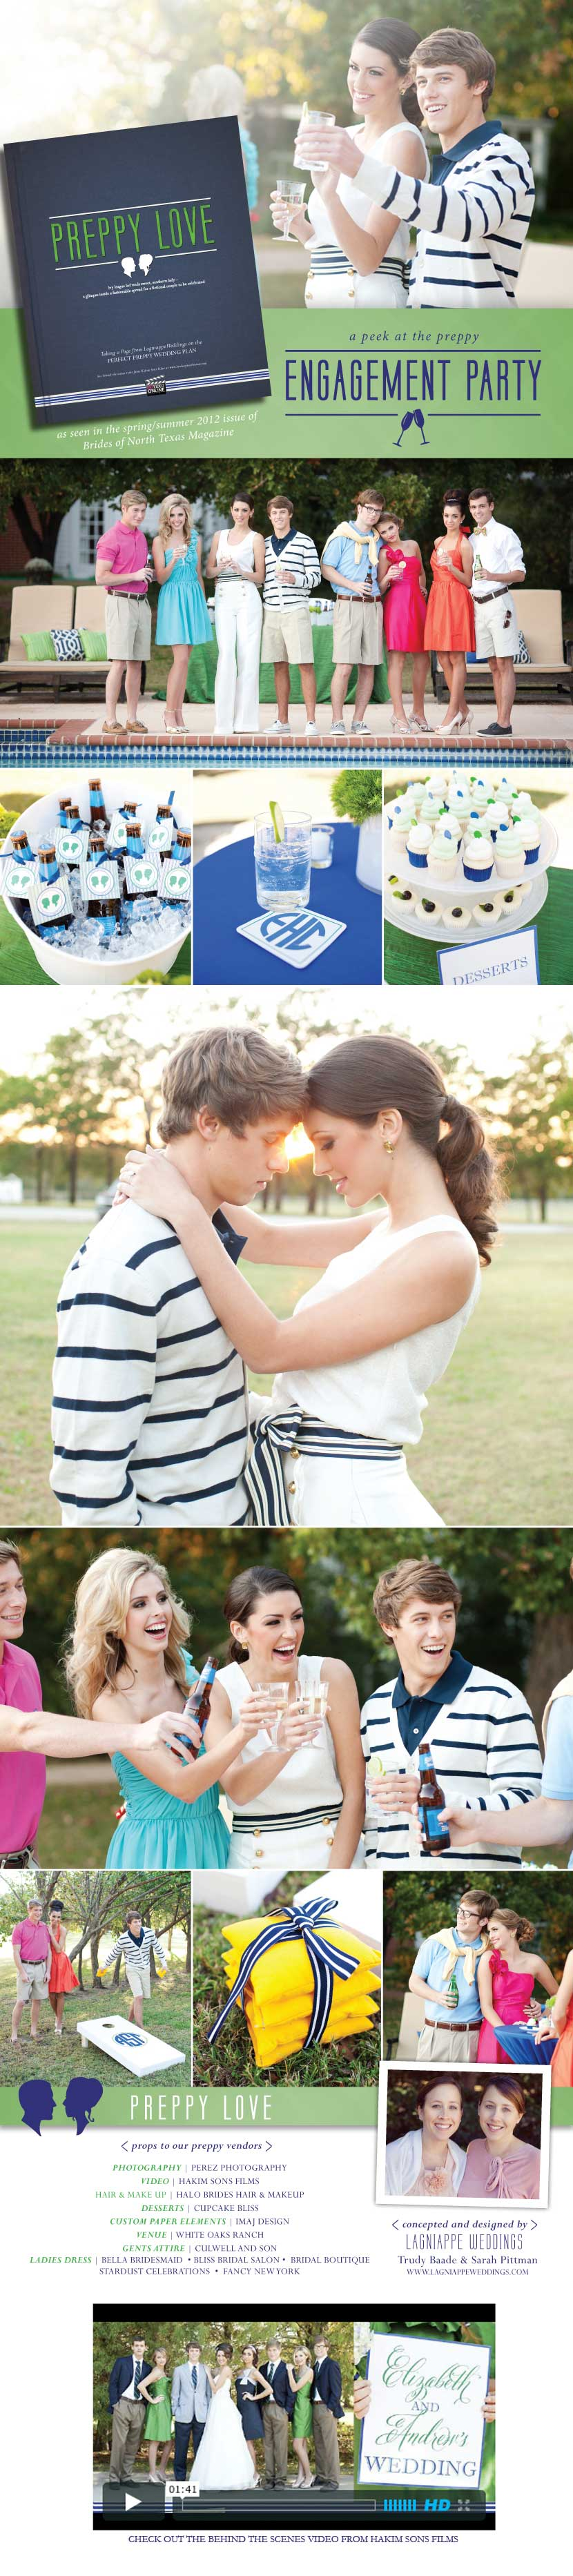 Preppy Love: Part I